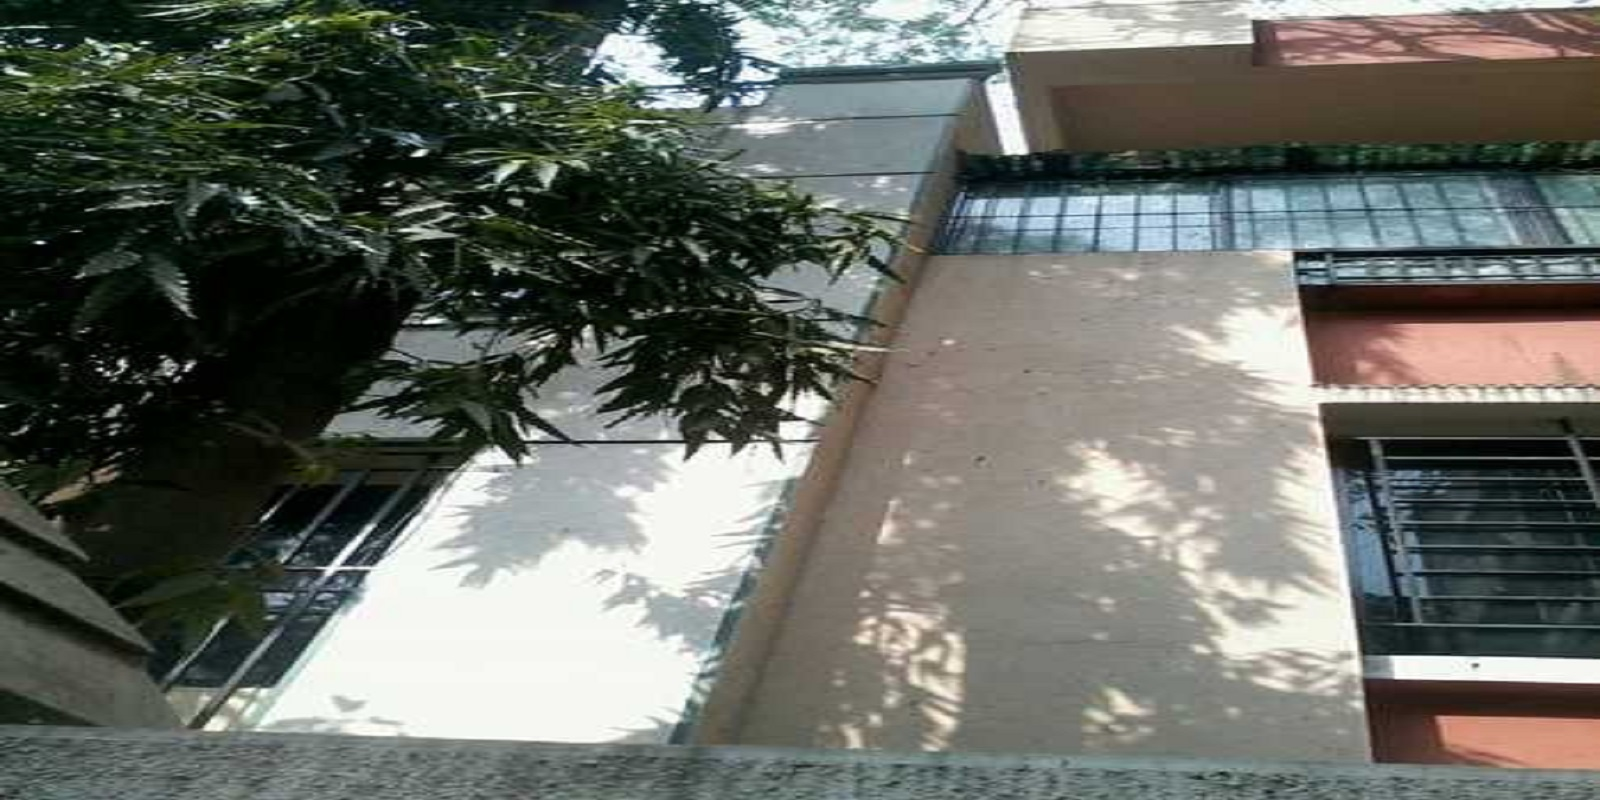 bramhachaitanya apartment project project large image1